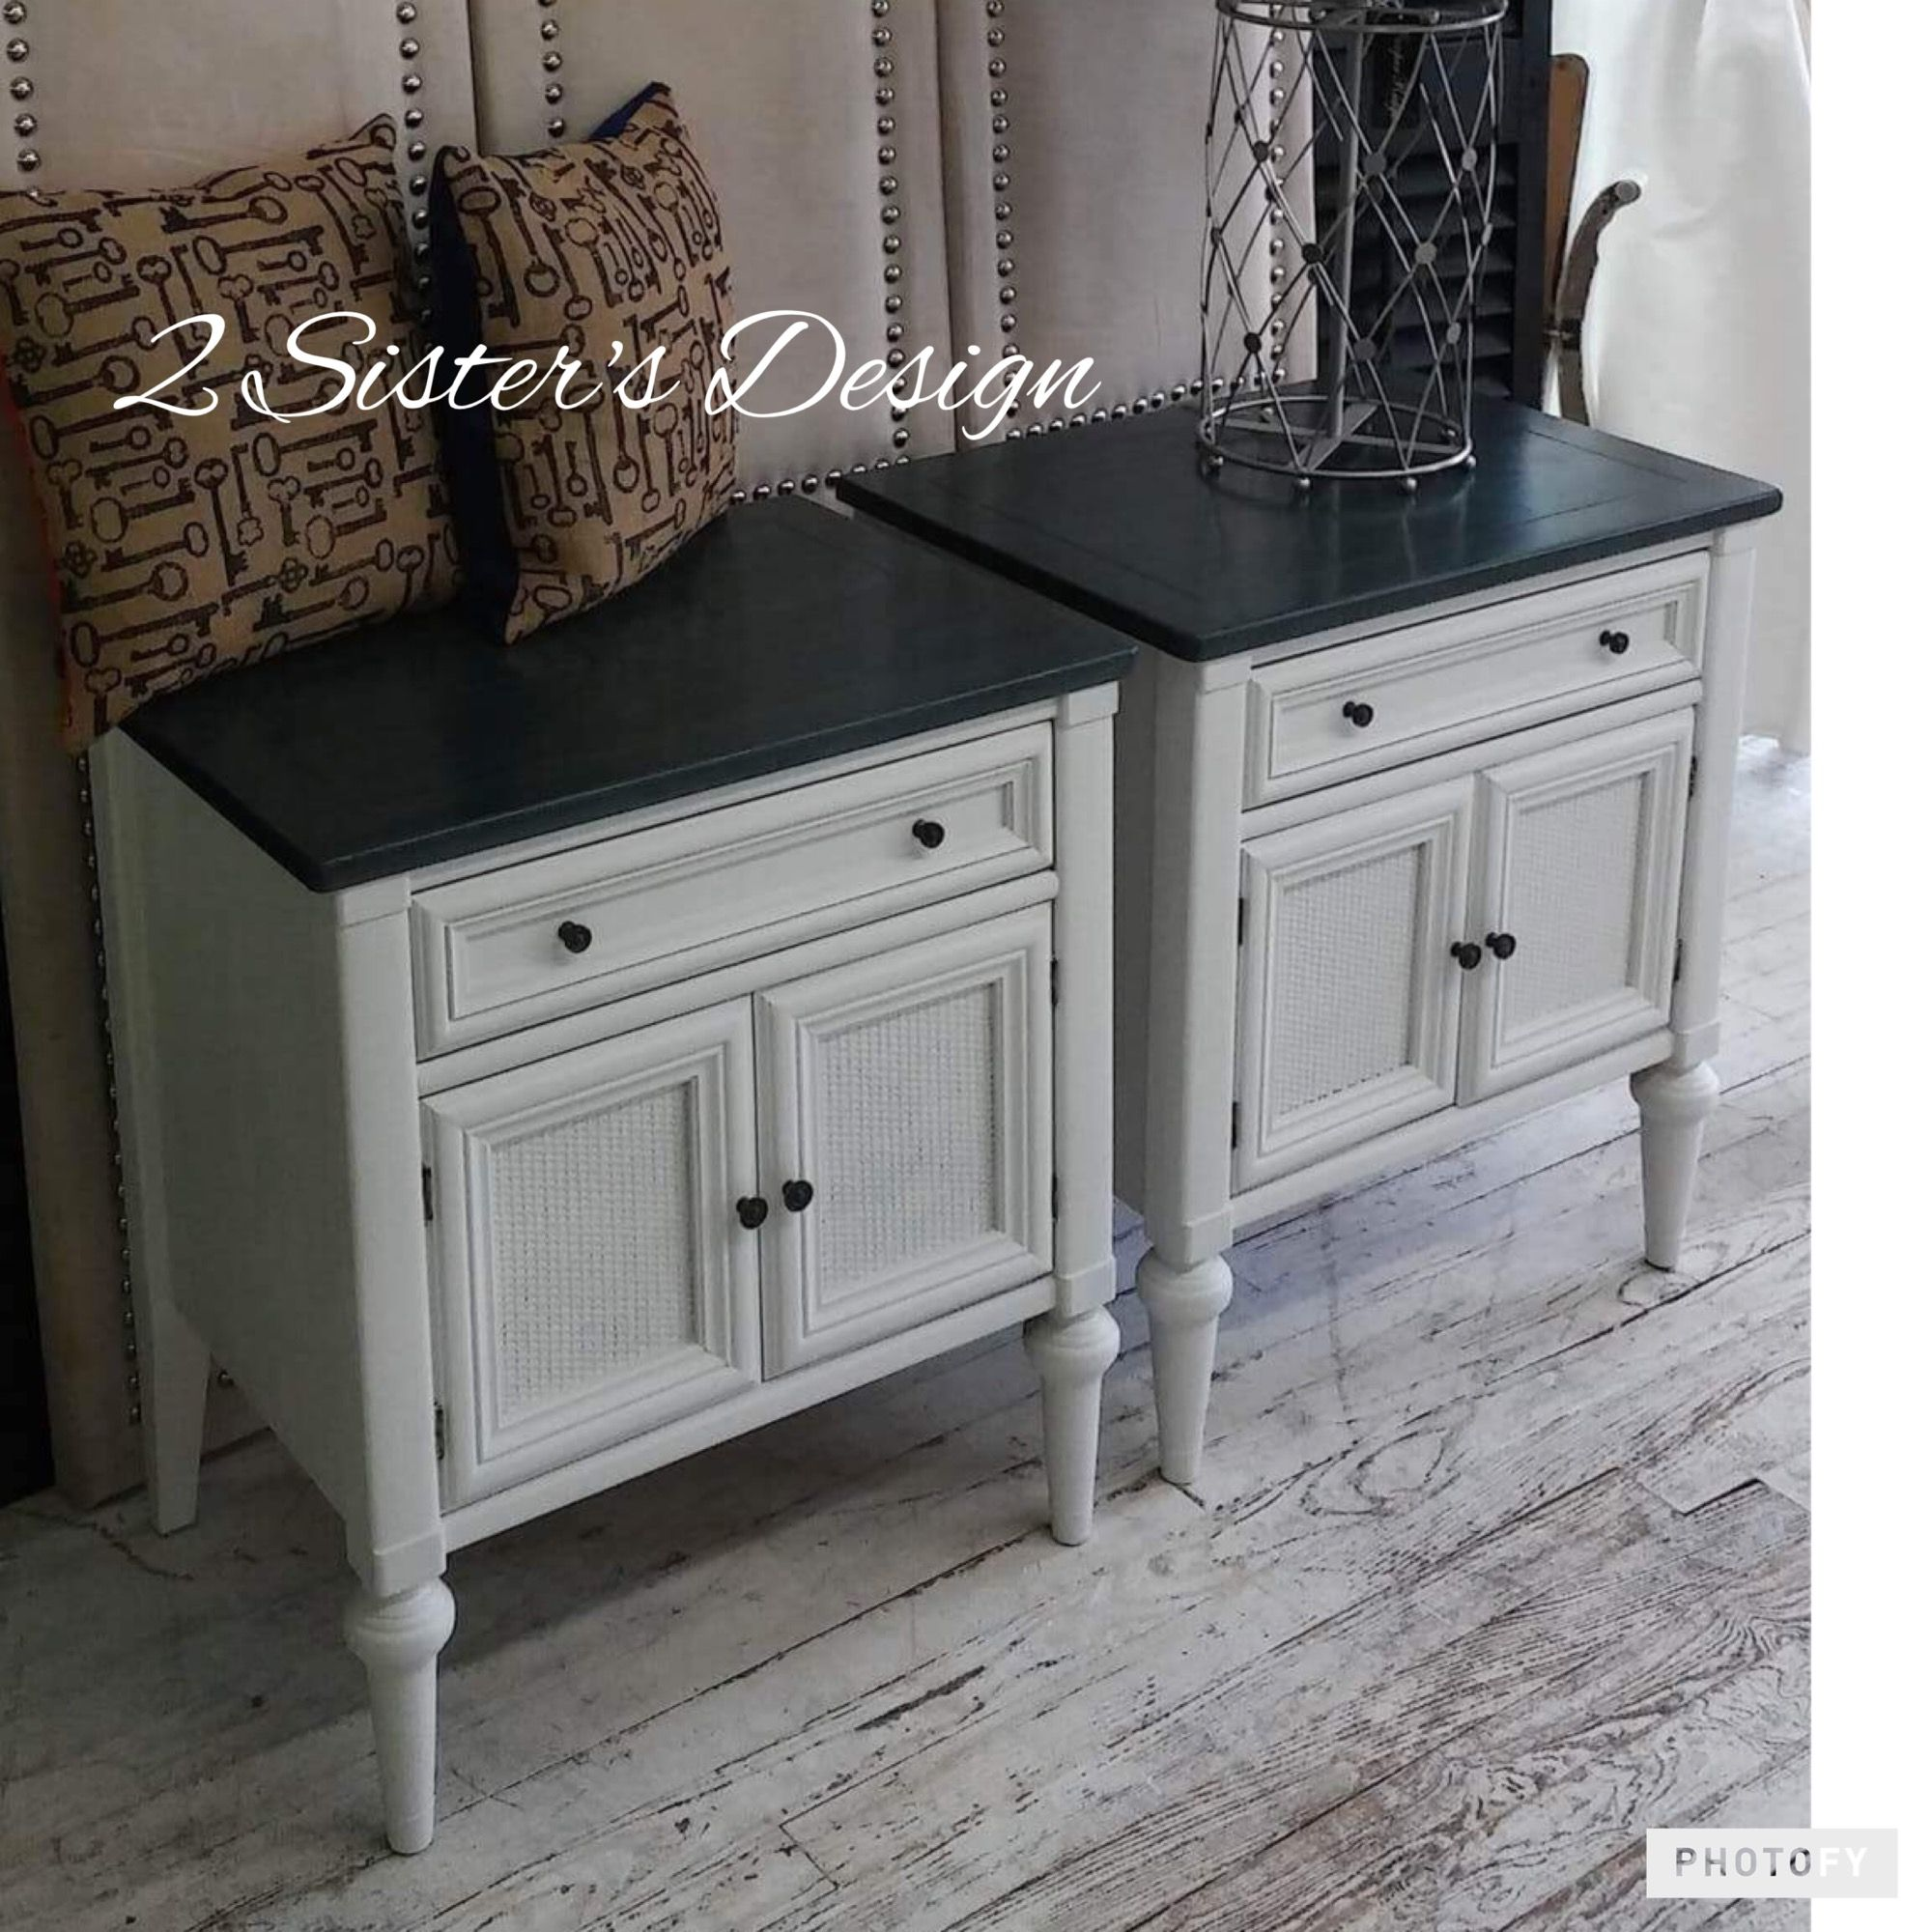 Farmhouse Style Nightstands Painted With Dixie Belle Paint Colors Fluff And Stormy Seas With Black Refurbished Furniture Painted Furniture Dixie Belle Paint